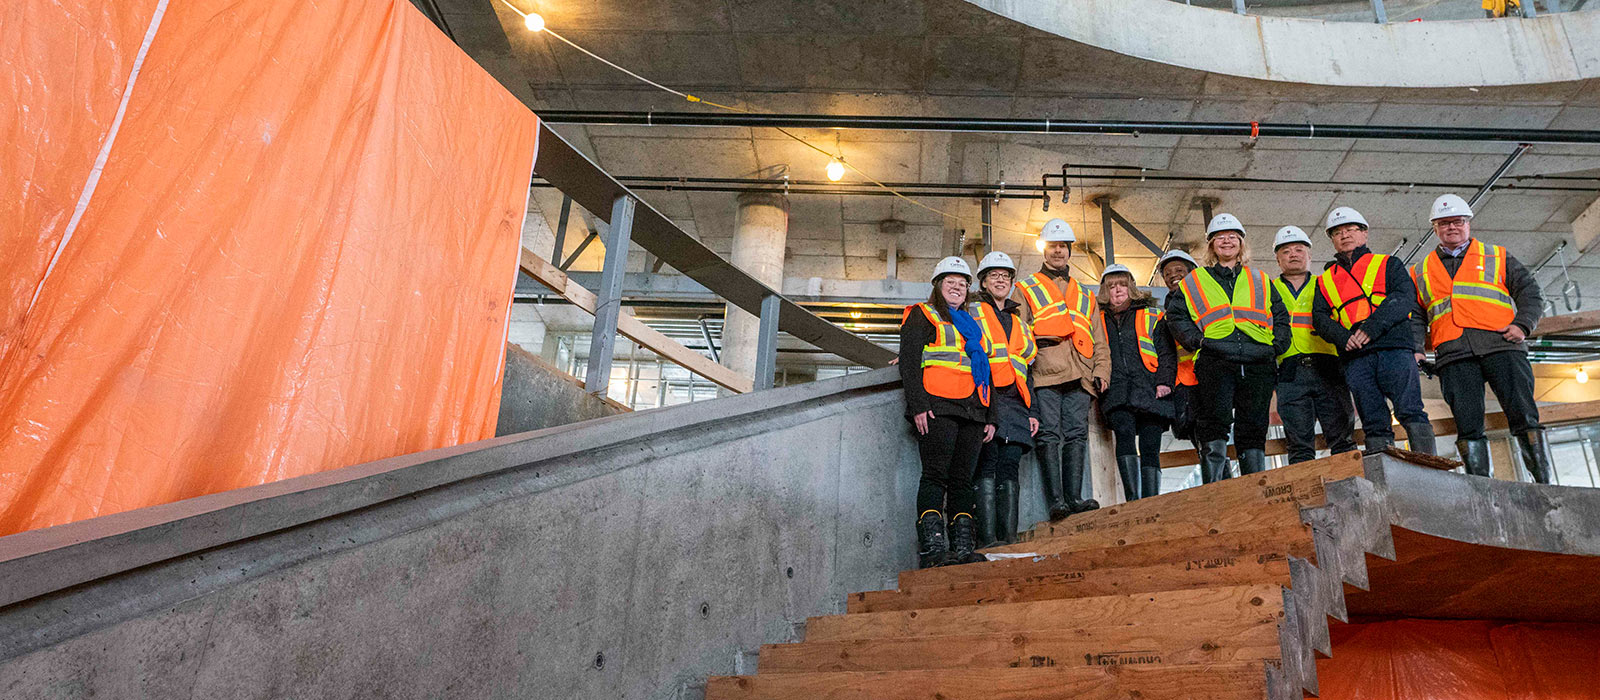 Members of the Carleton community examine the new Sprott building